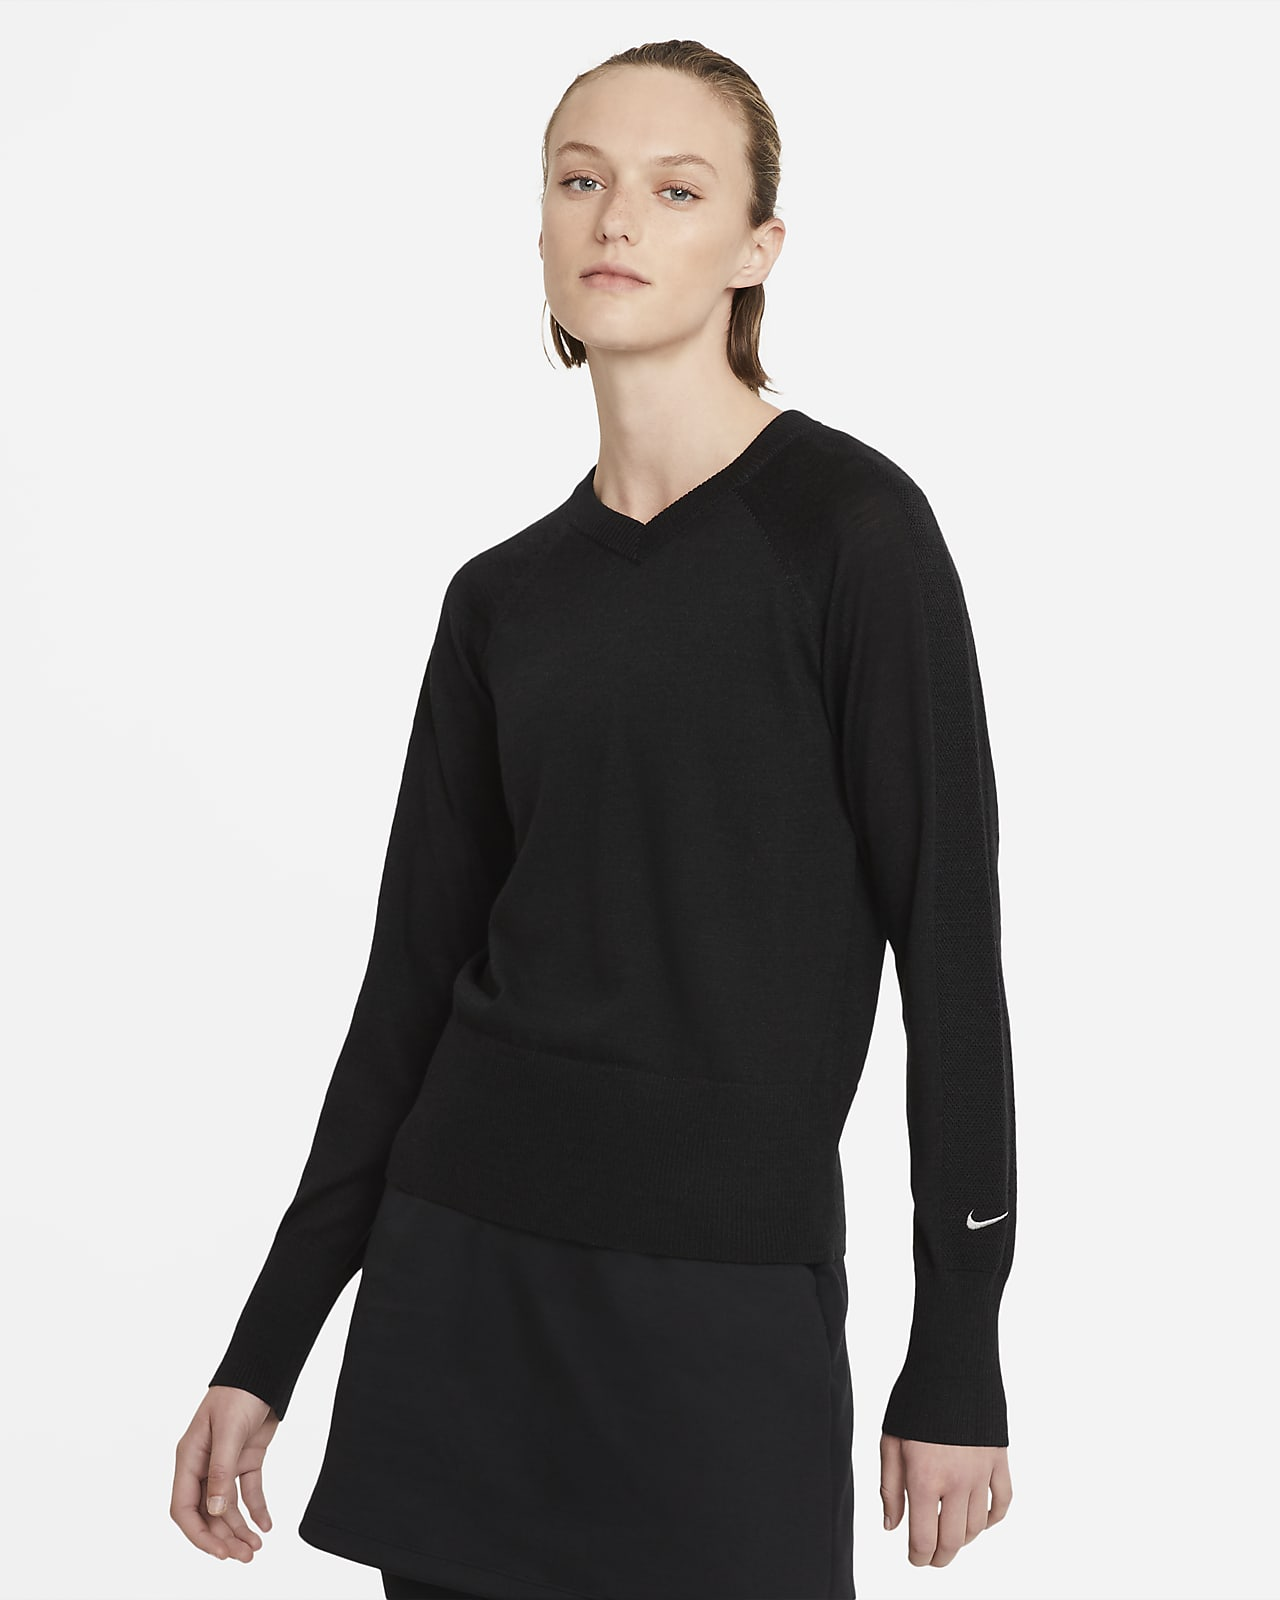 Nike Ace Women's Long-Sleeve Golf Jumper